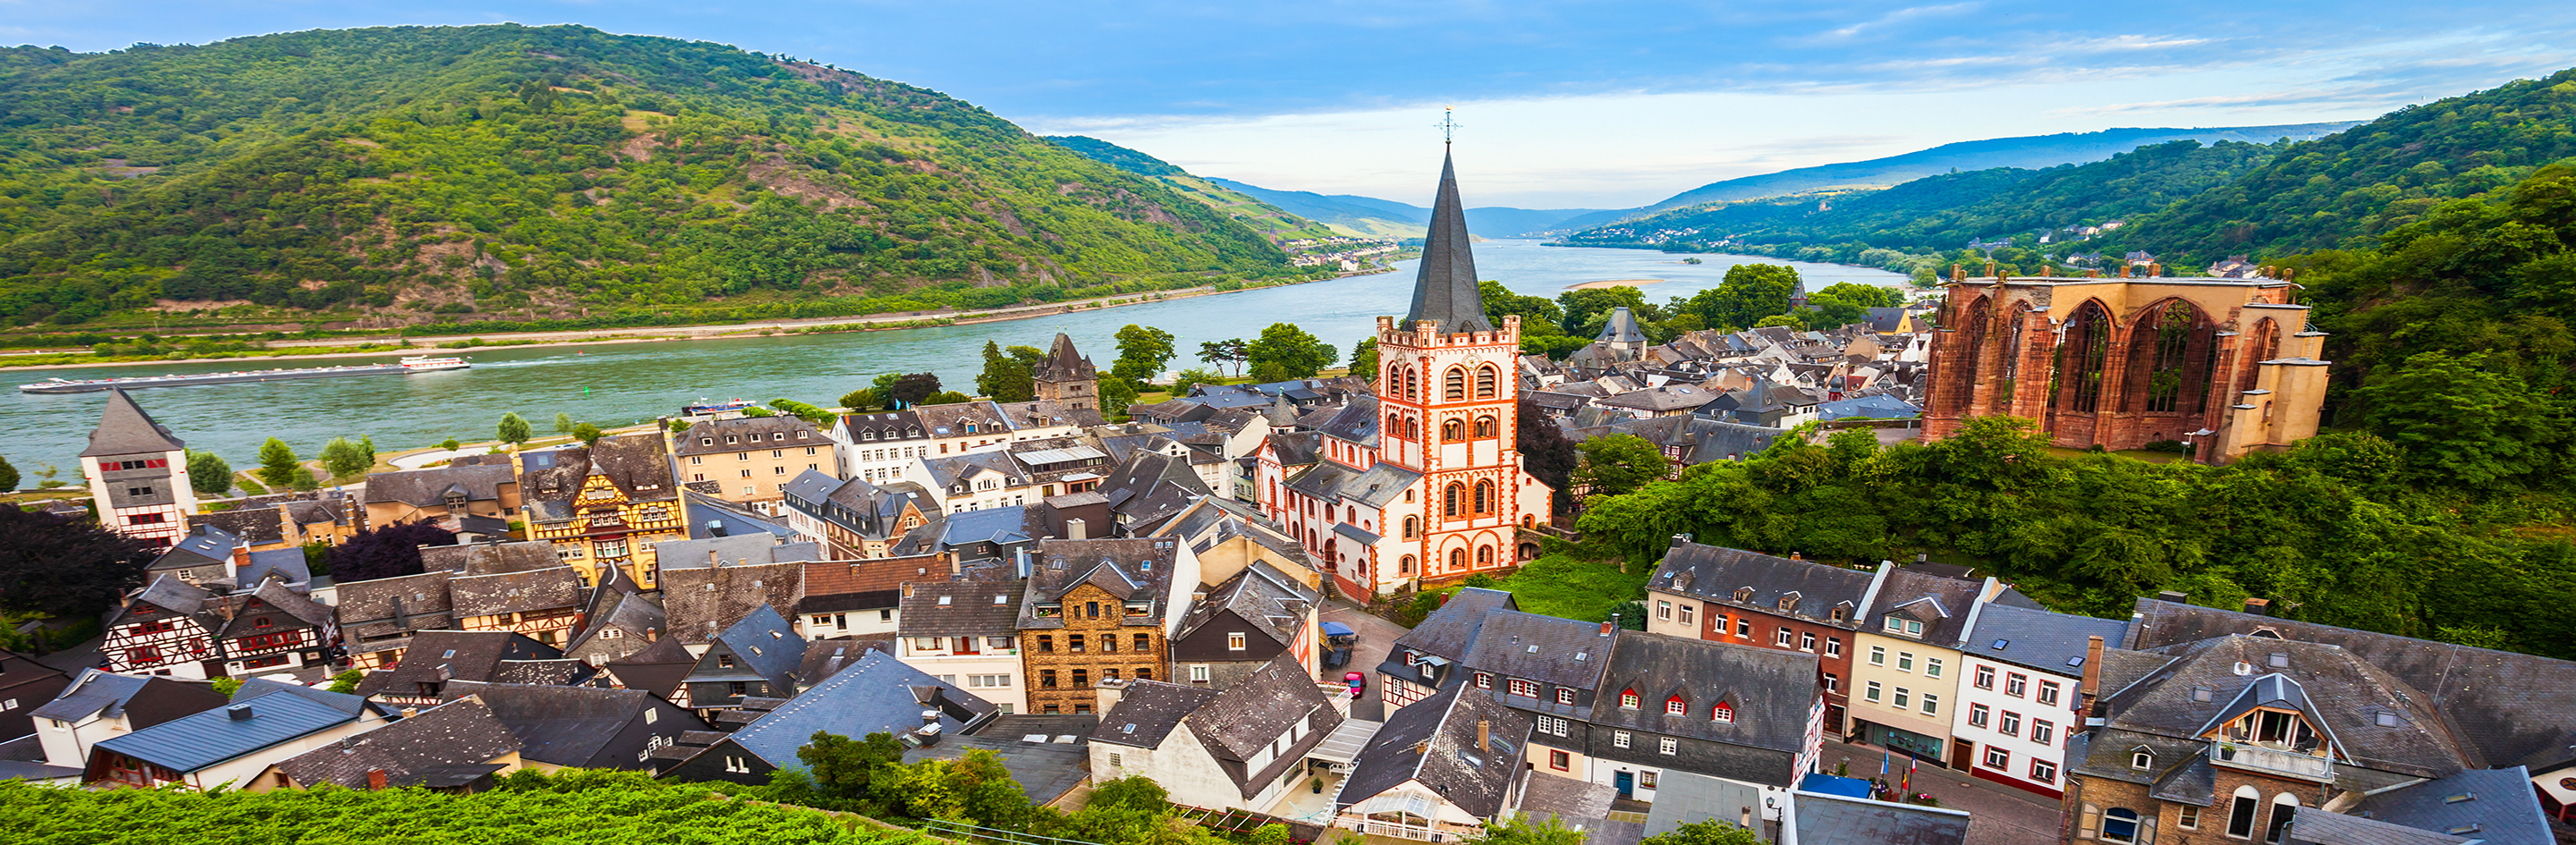 AmaWaterways-flexibility-and-peace-of-mind